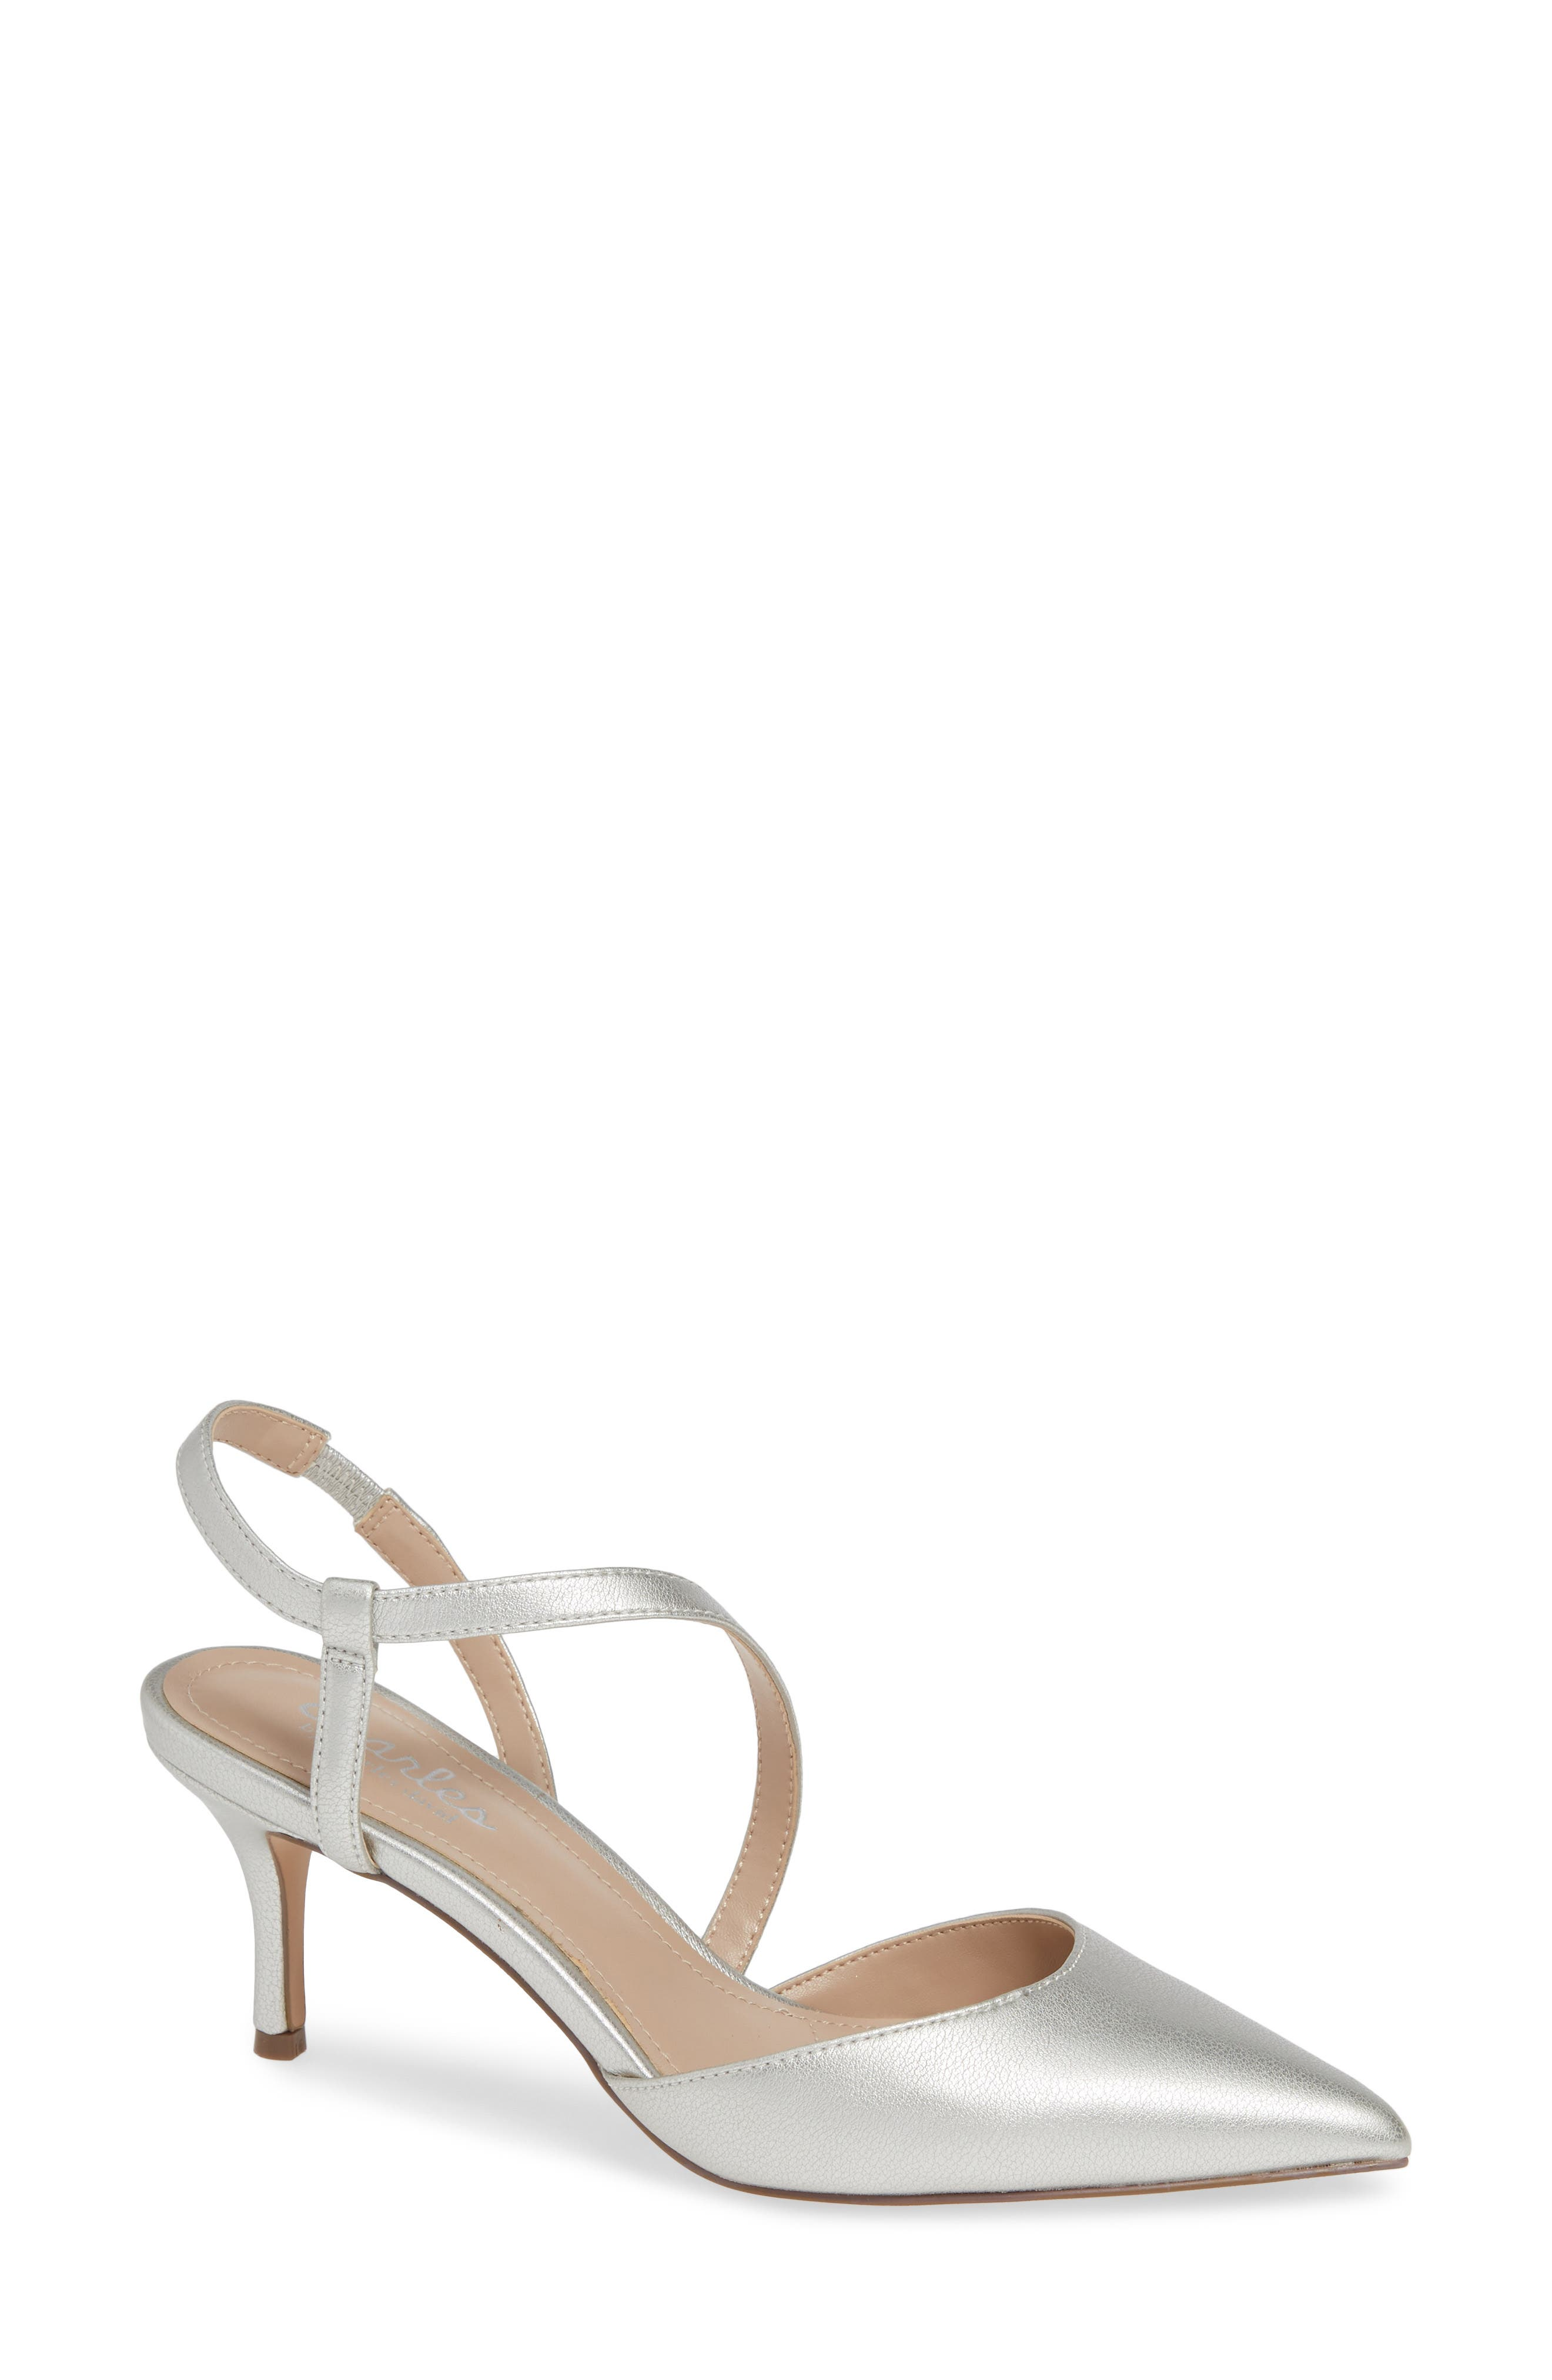 CHARLES BY CHARLES DAVID, Alda Pump, Main thumbnail 1, color, SILVER FAUX LEATHER